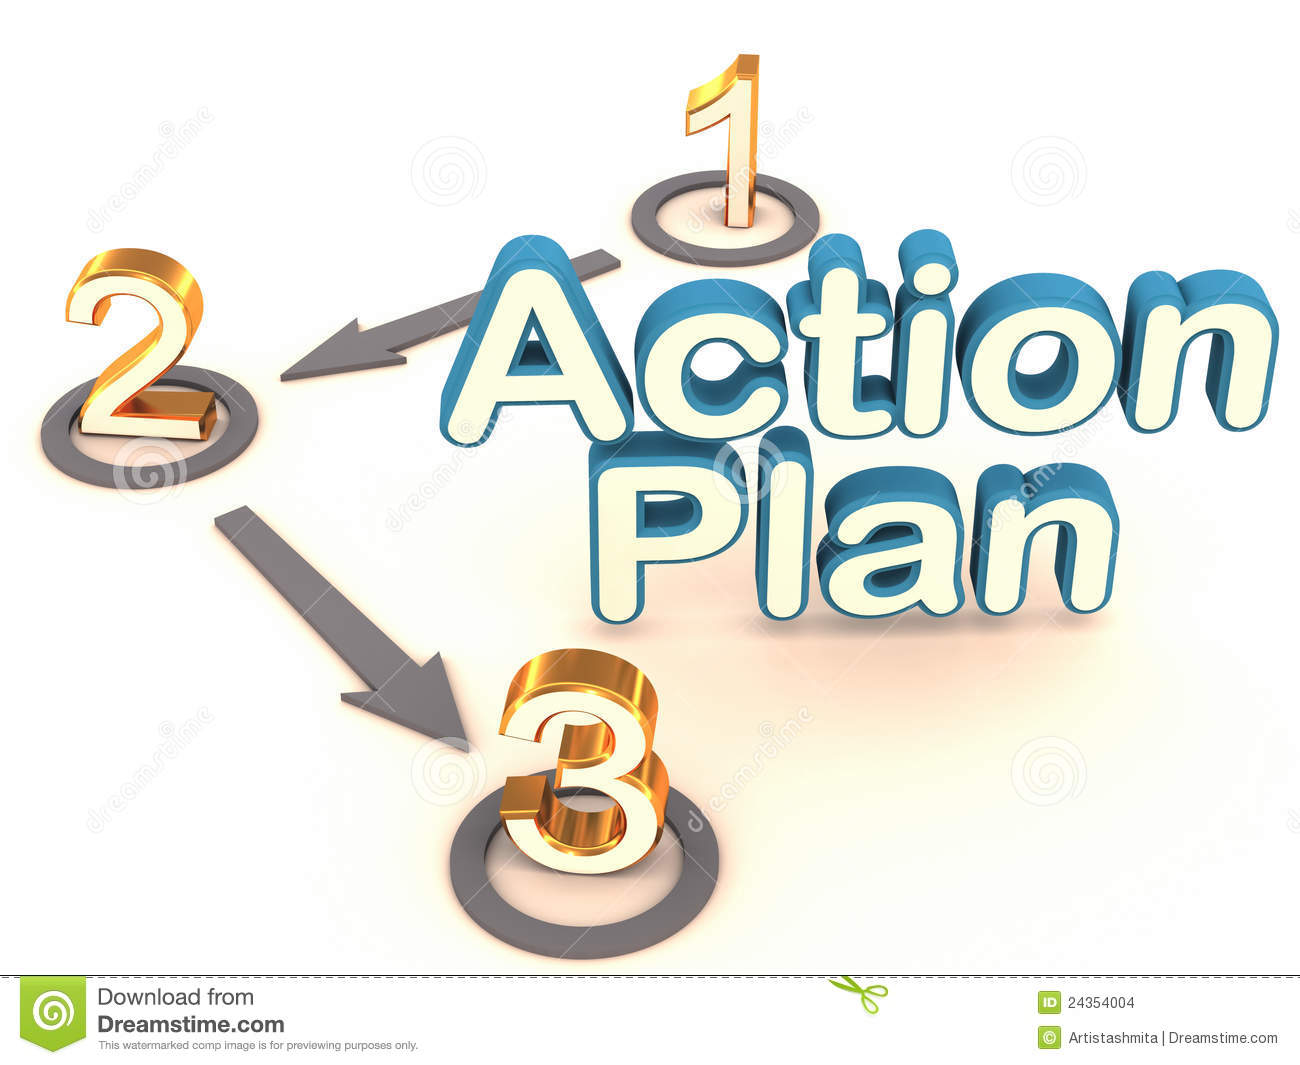 Action Plan Images Image 24354004 – Action Plans